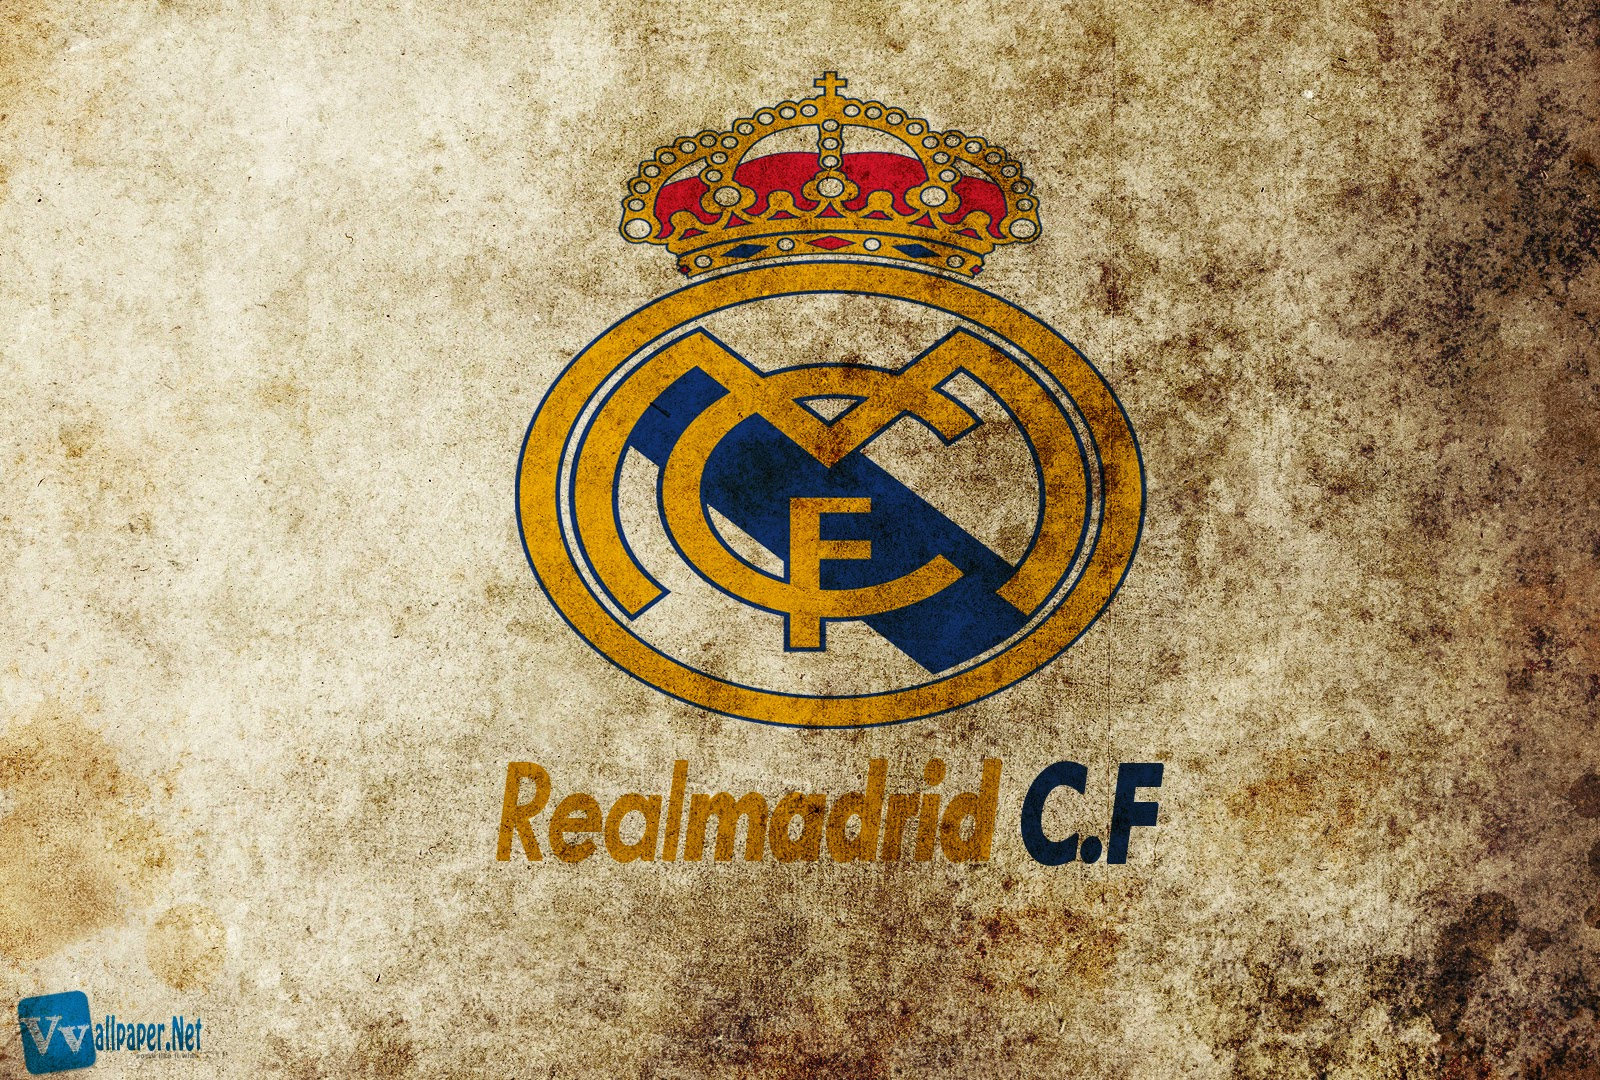 1600x1080 - Real Madrid C.F. Wallpapers 31